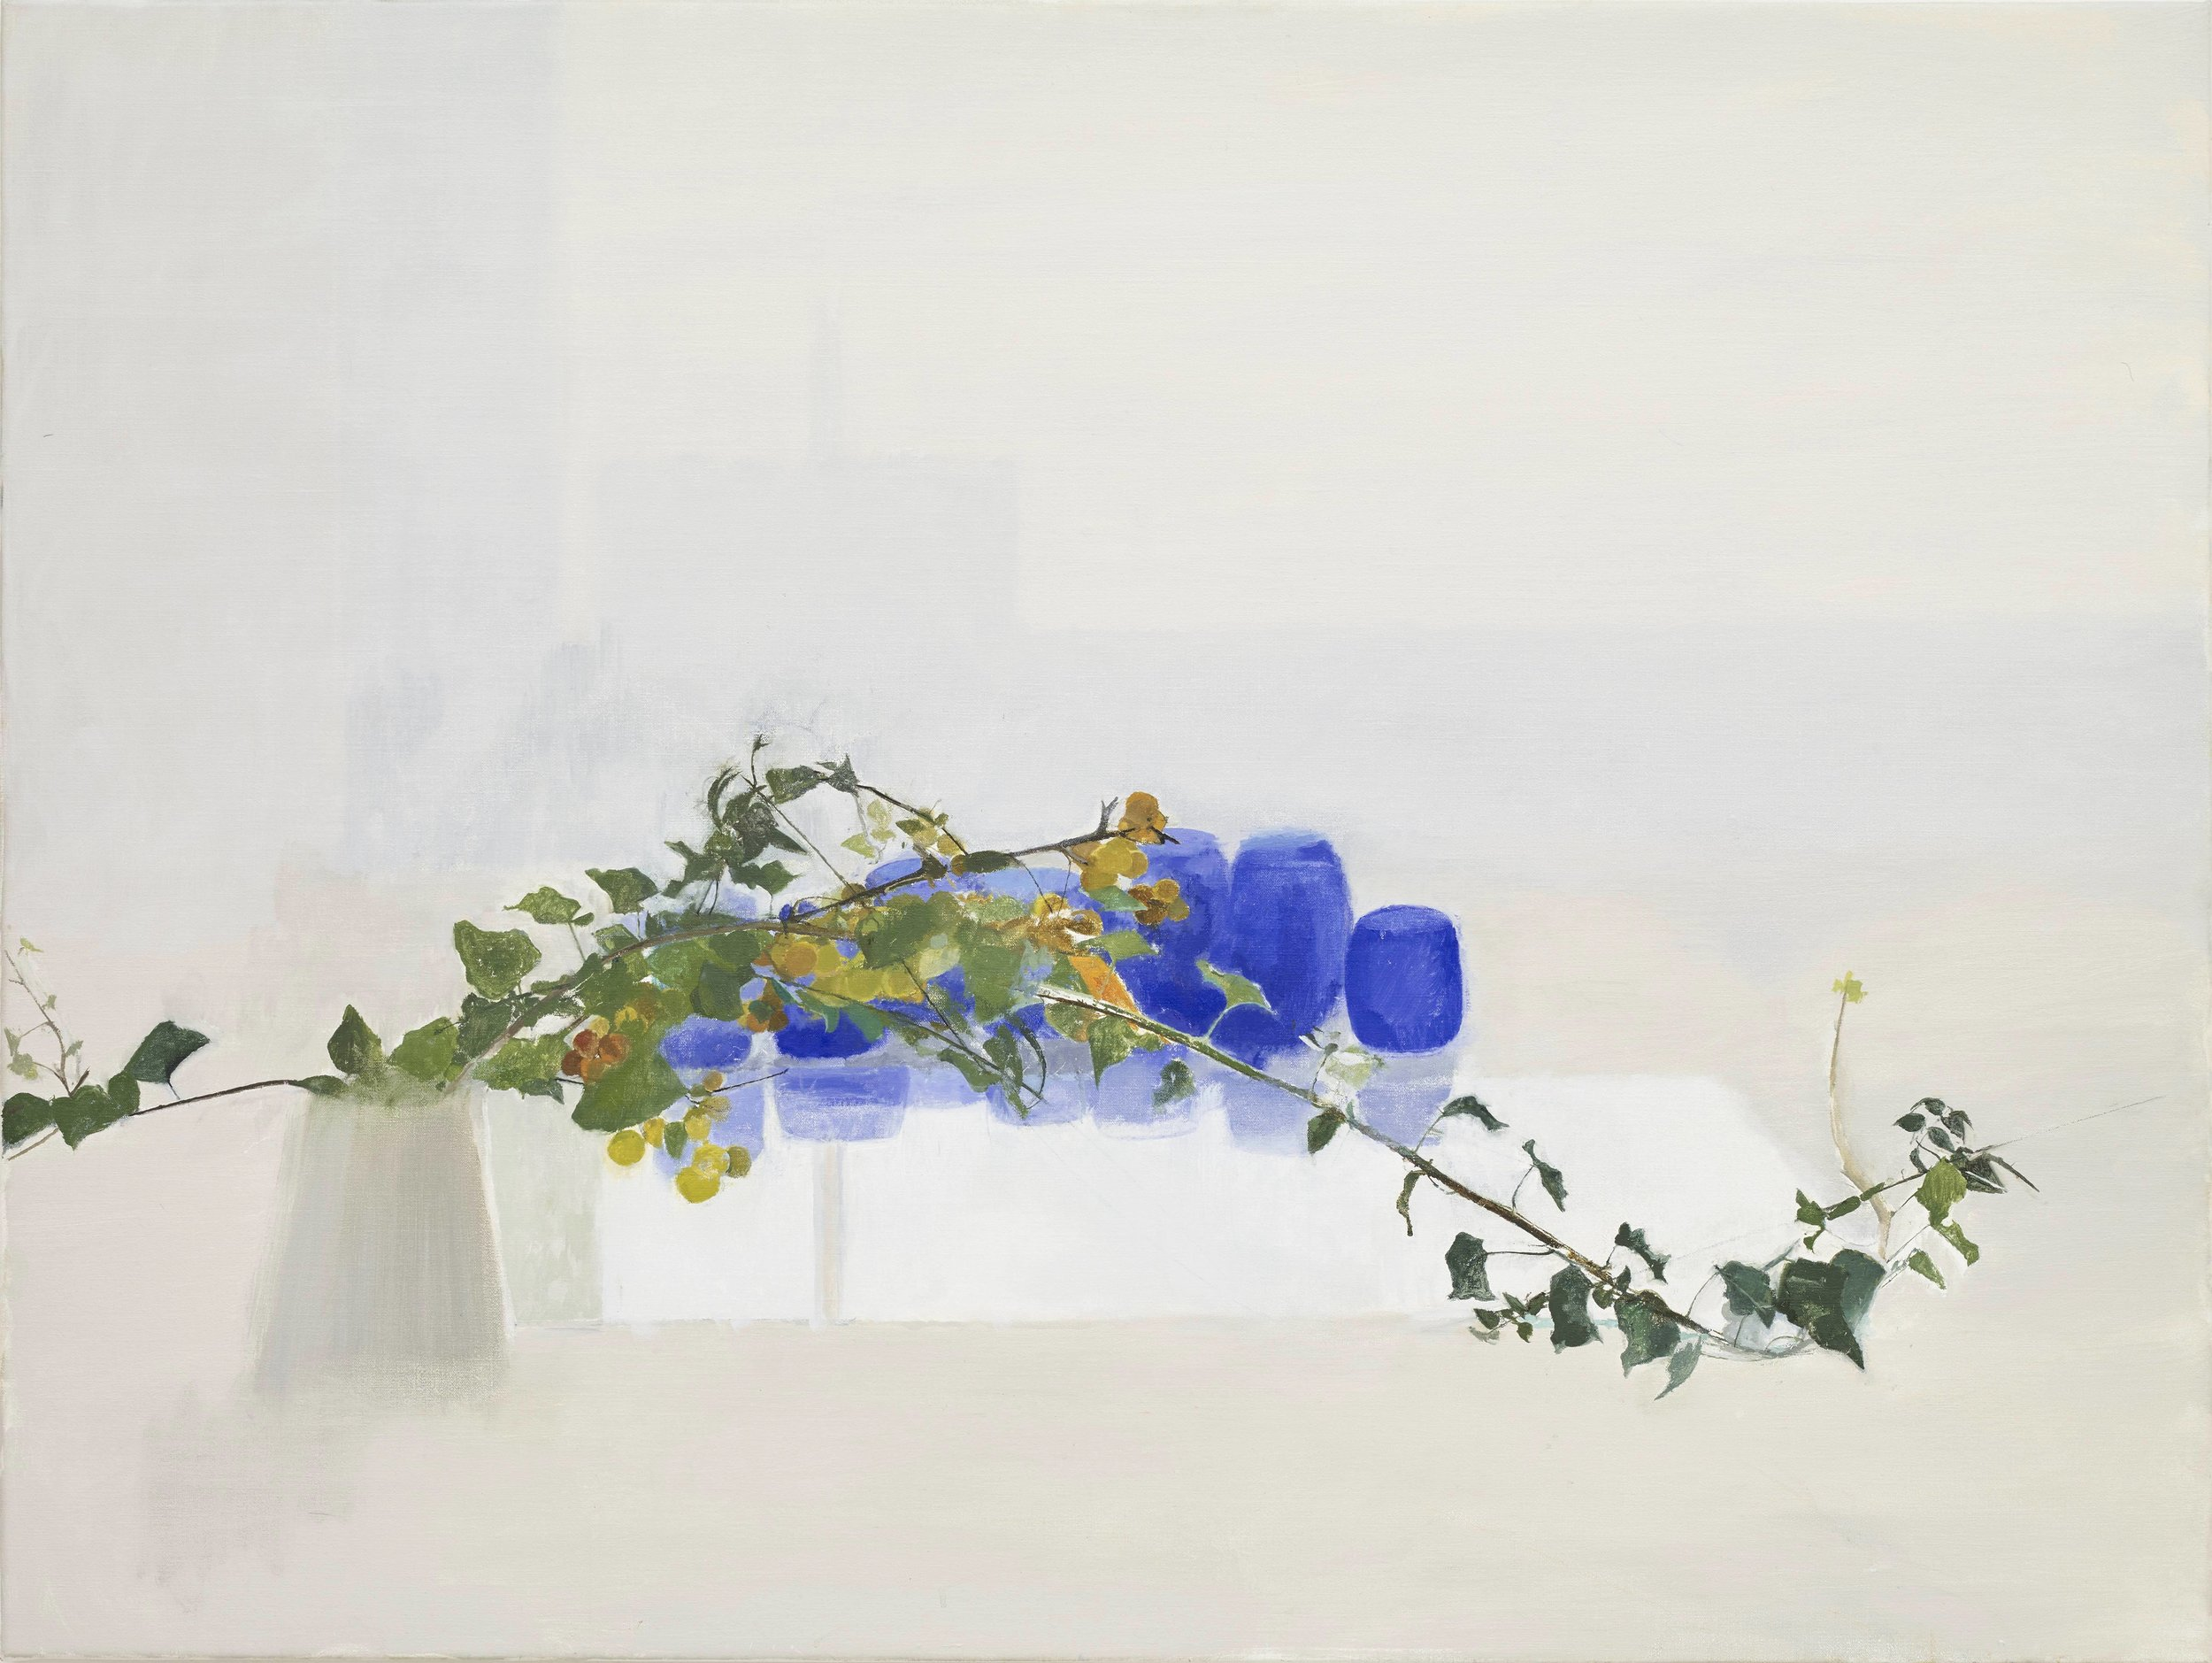 Blue Remembered, 2018, oil on canvas, 110 x 86 cm